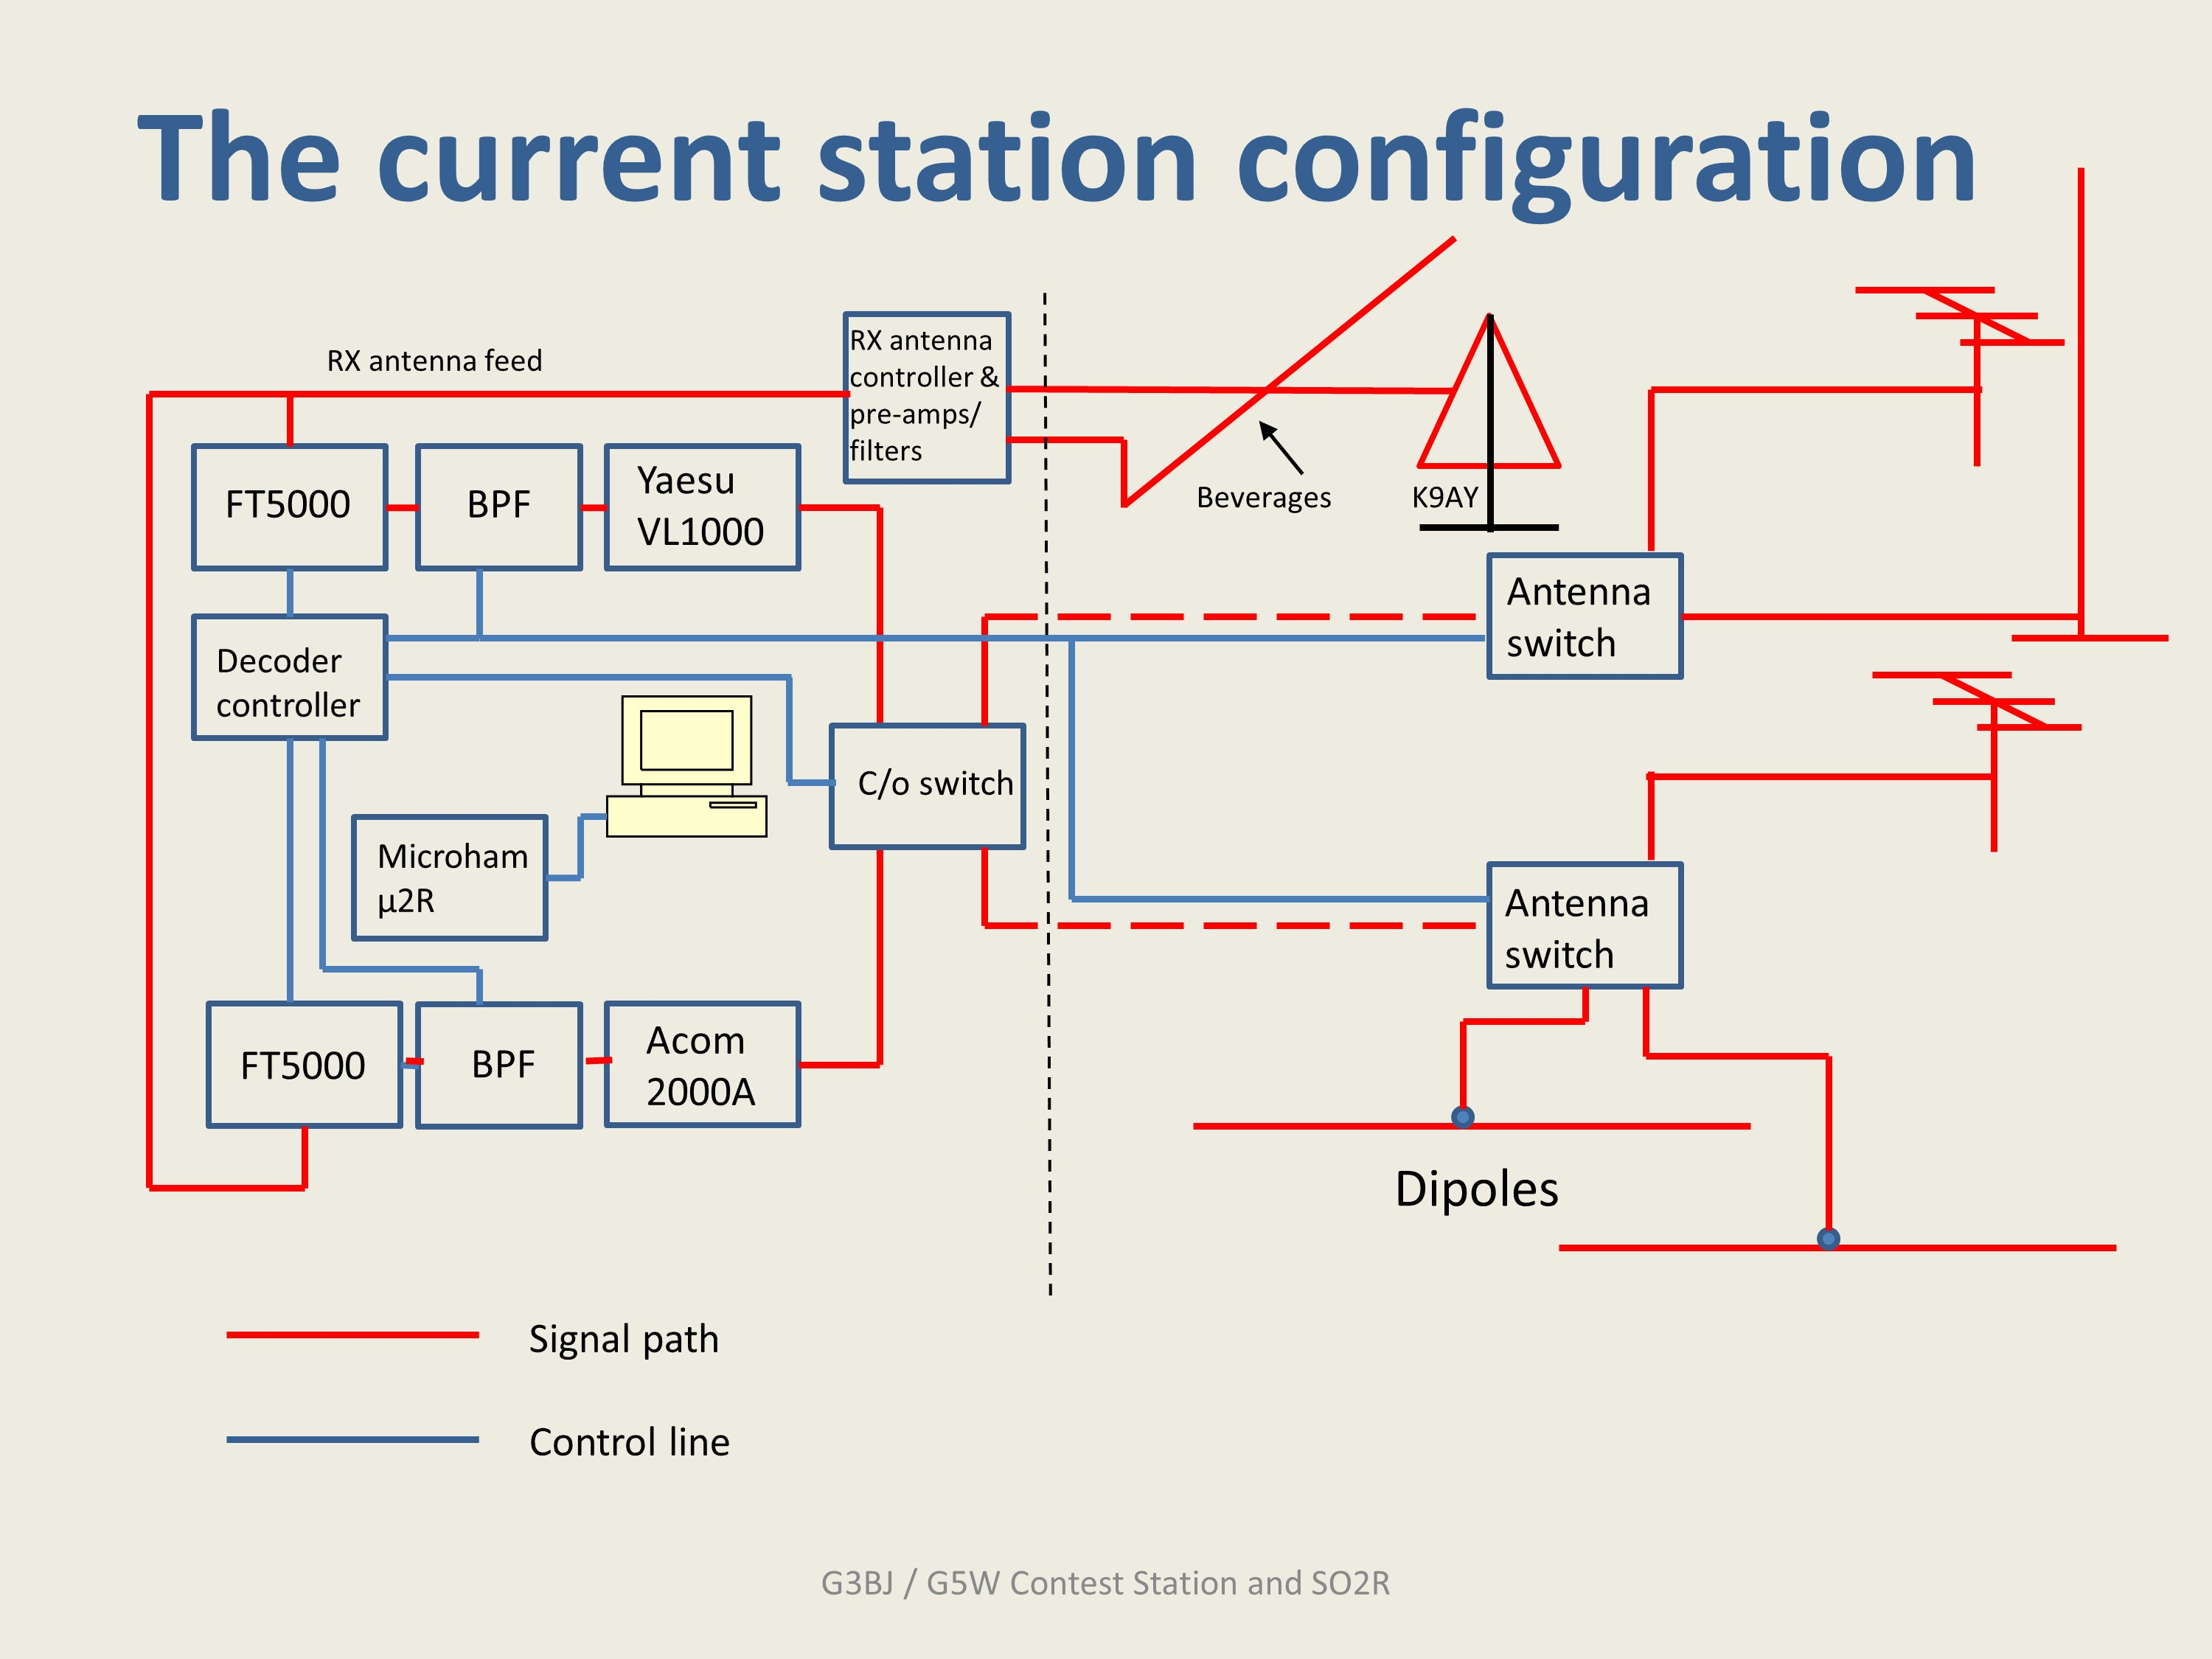 A simplified diagram of the G3BJ / G5W station